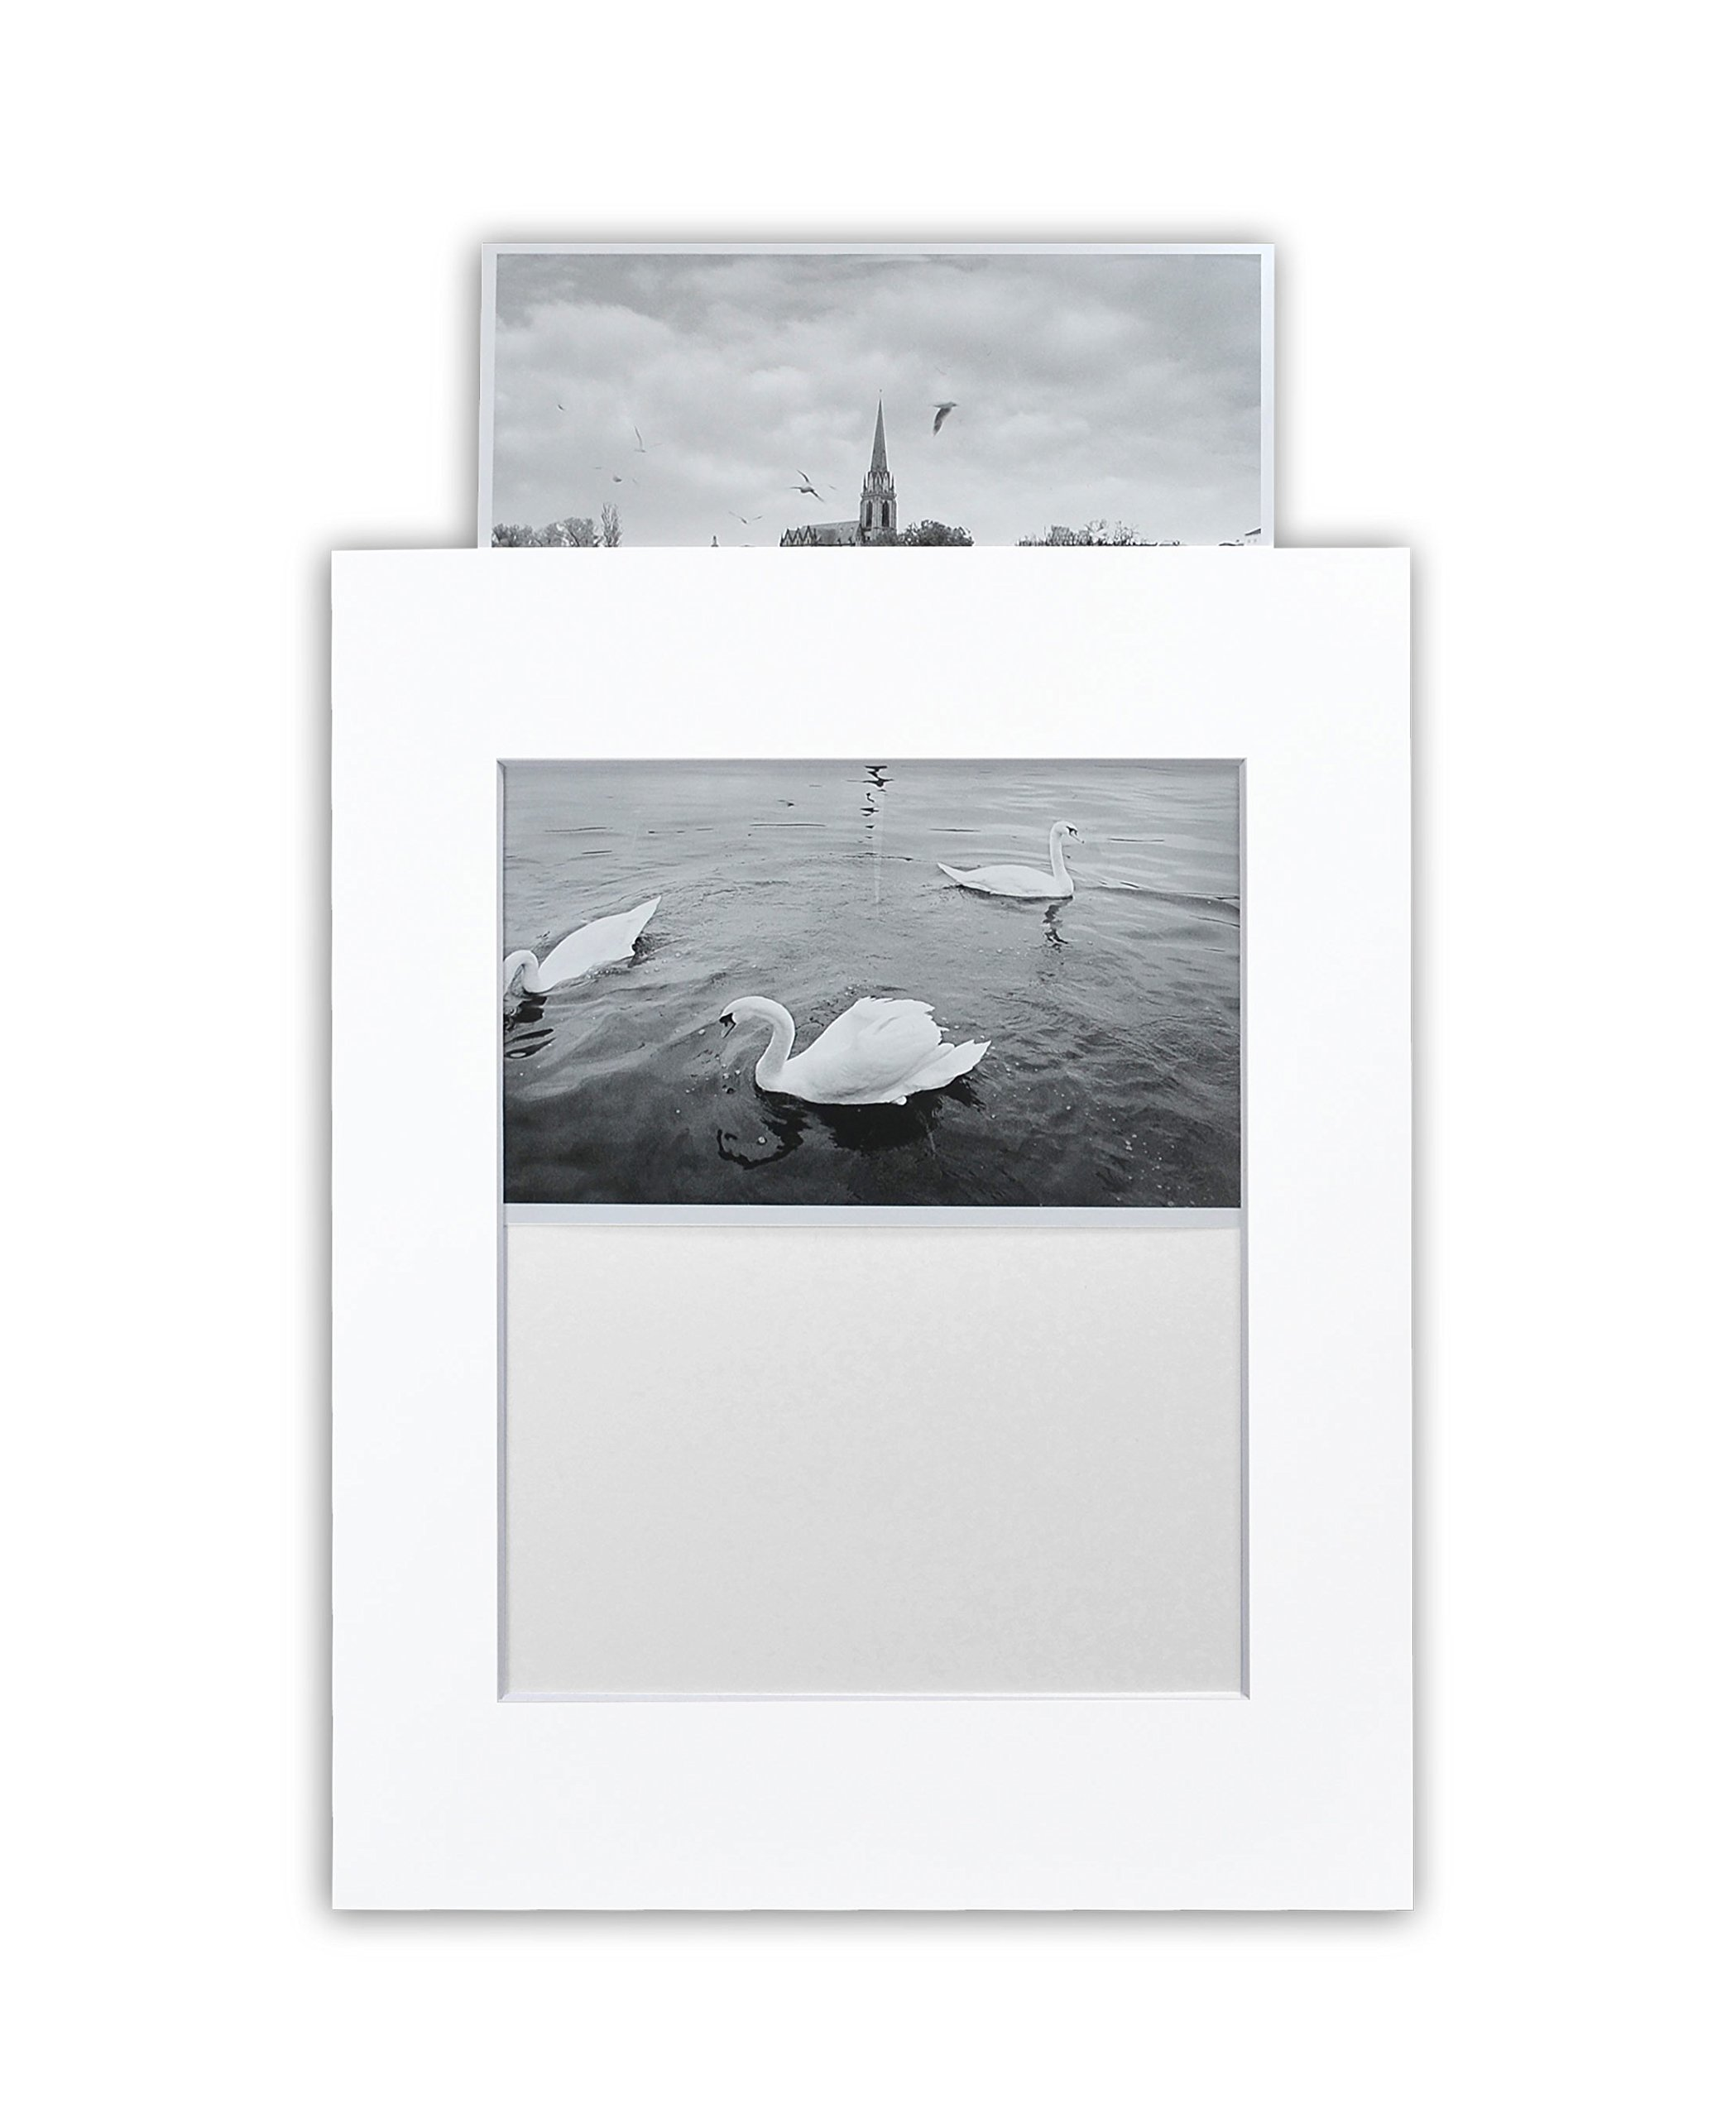 Golden State Art, Pack of 25 White 11x14 Slip-in Pre-Adhesive Photo Mat for 8x10 Picture with Backing Board pre-Assembled, Includes 25 Clear Bags by Golden State Art